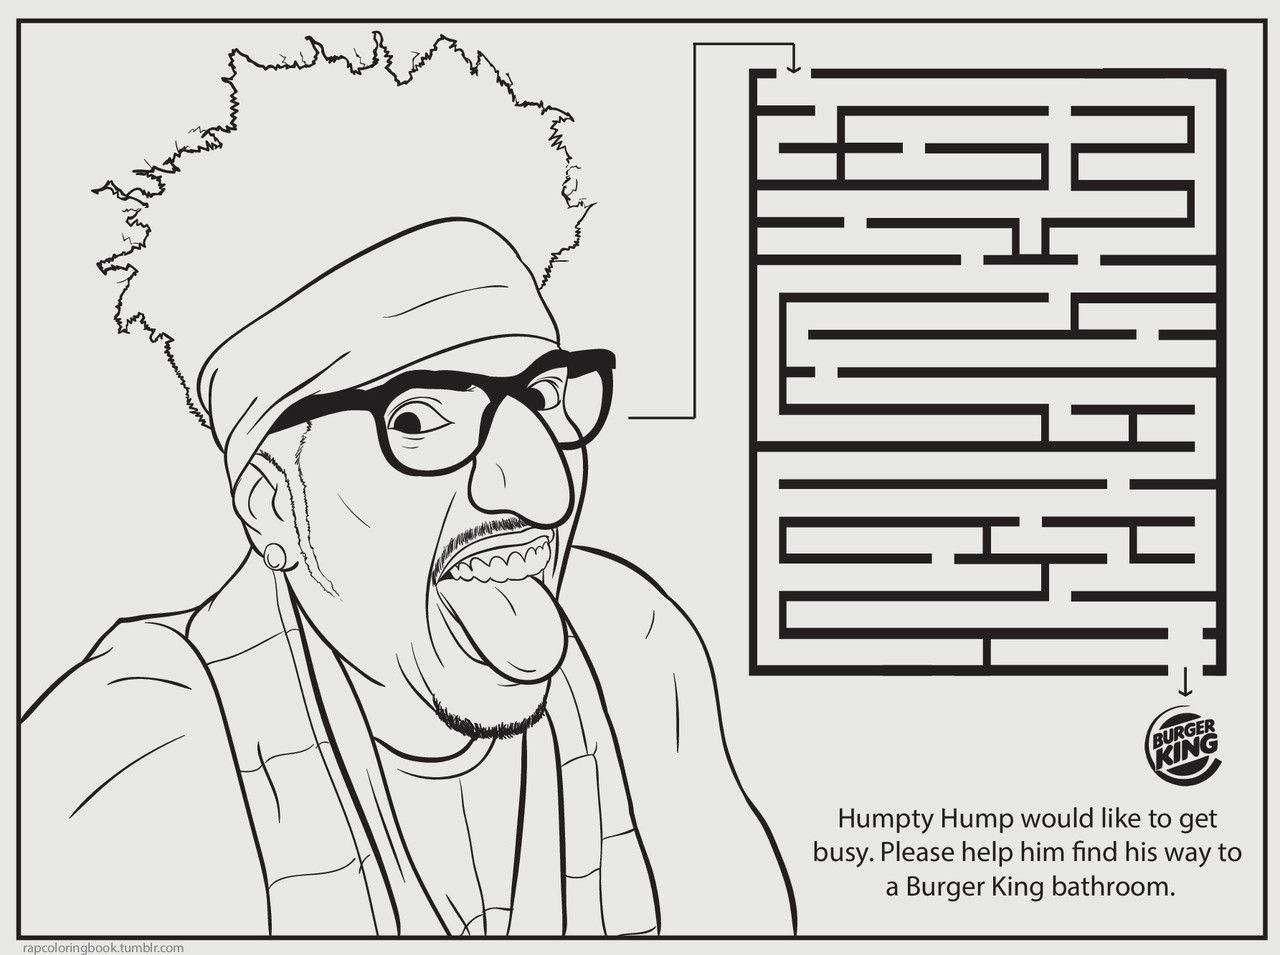 Gregory Jacobs Commonly Known By His Stage Name Shock G